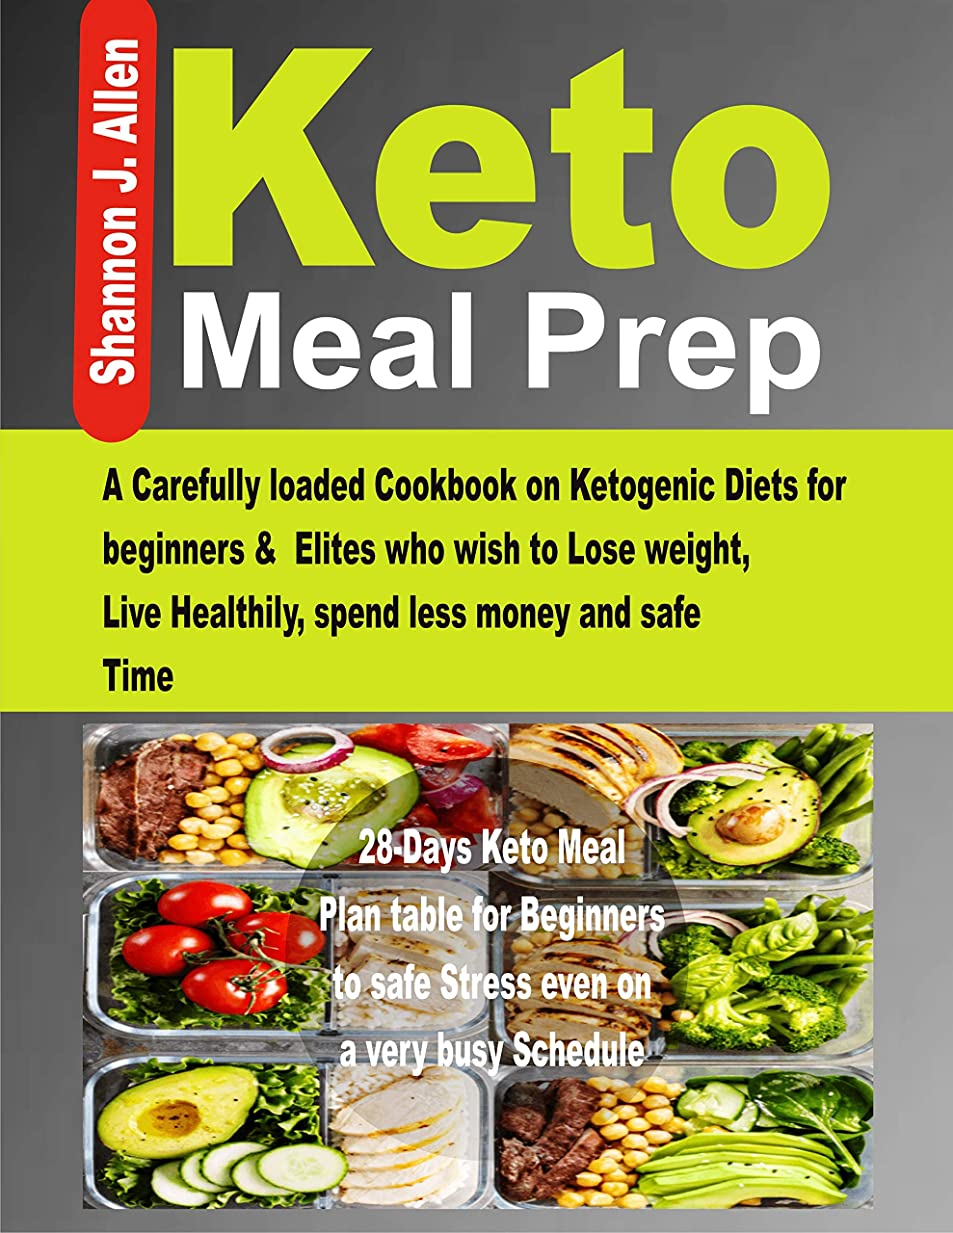 Keto Meal Prep : A Carefully loaded Cookbook on Ketogenic Diets for beginners & Elites who wish to Lose Weight, Live Healthily, spend less money and safe Time. (English Edition)